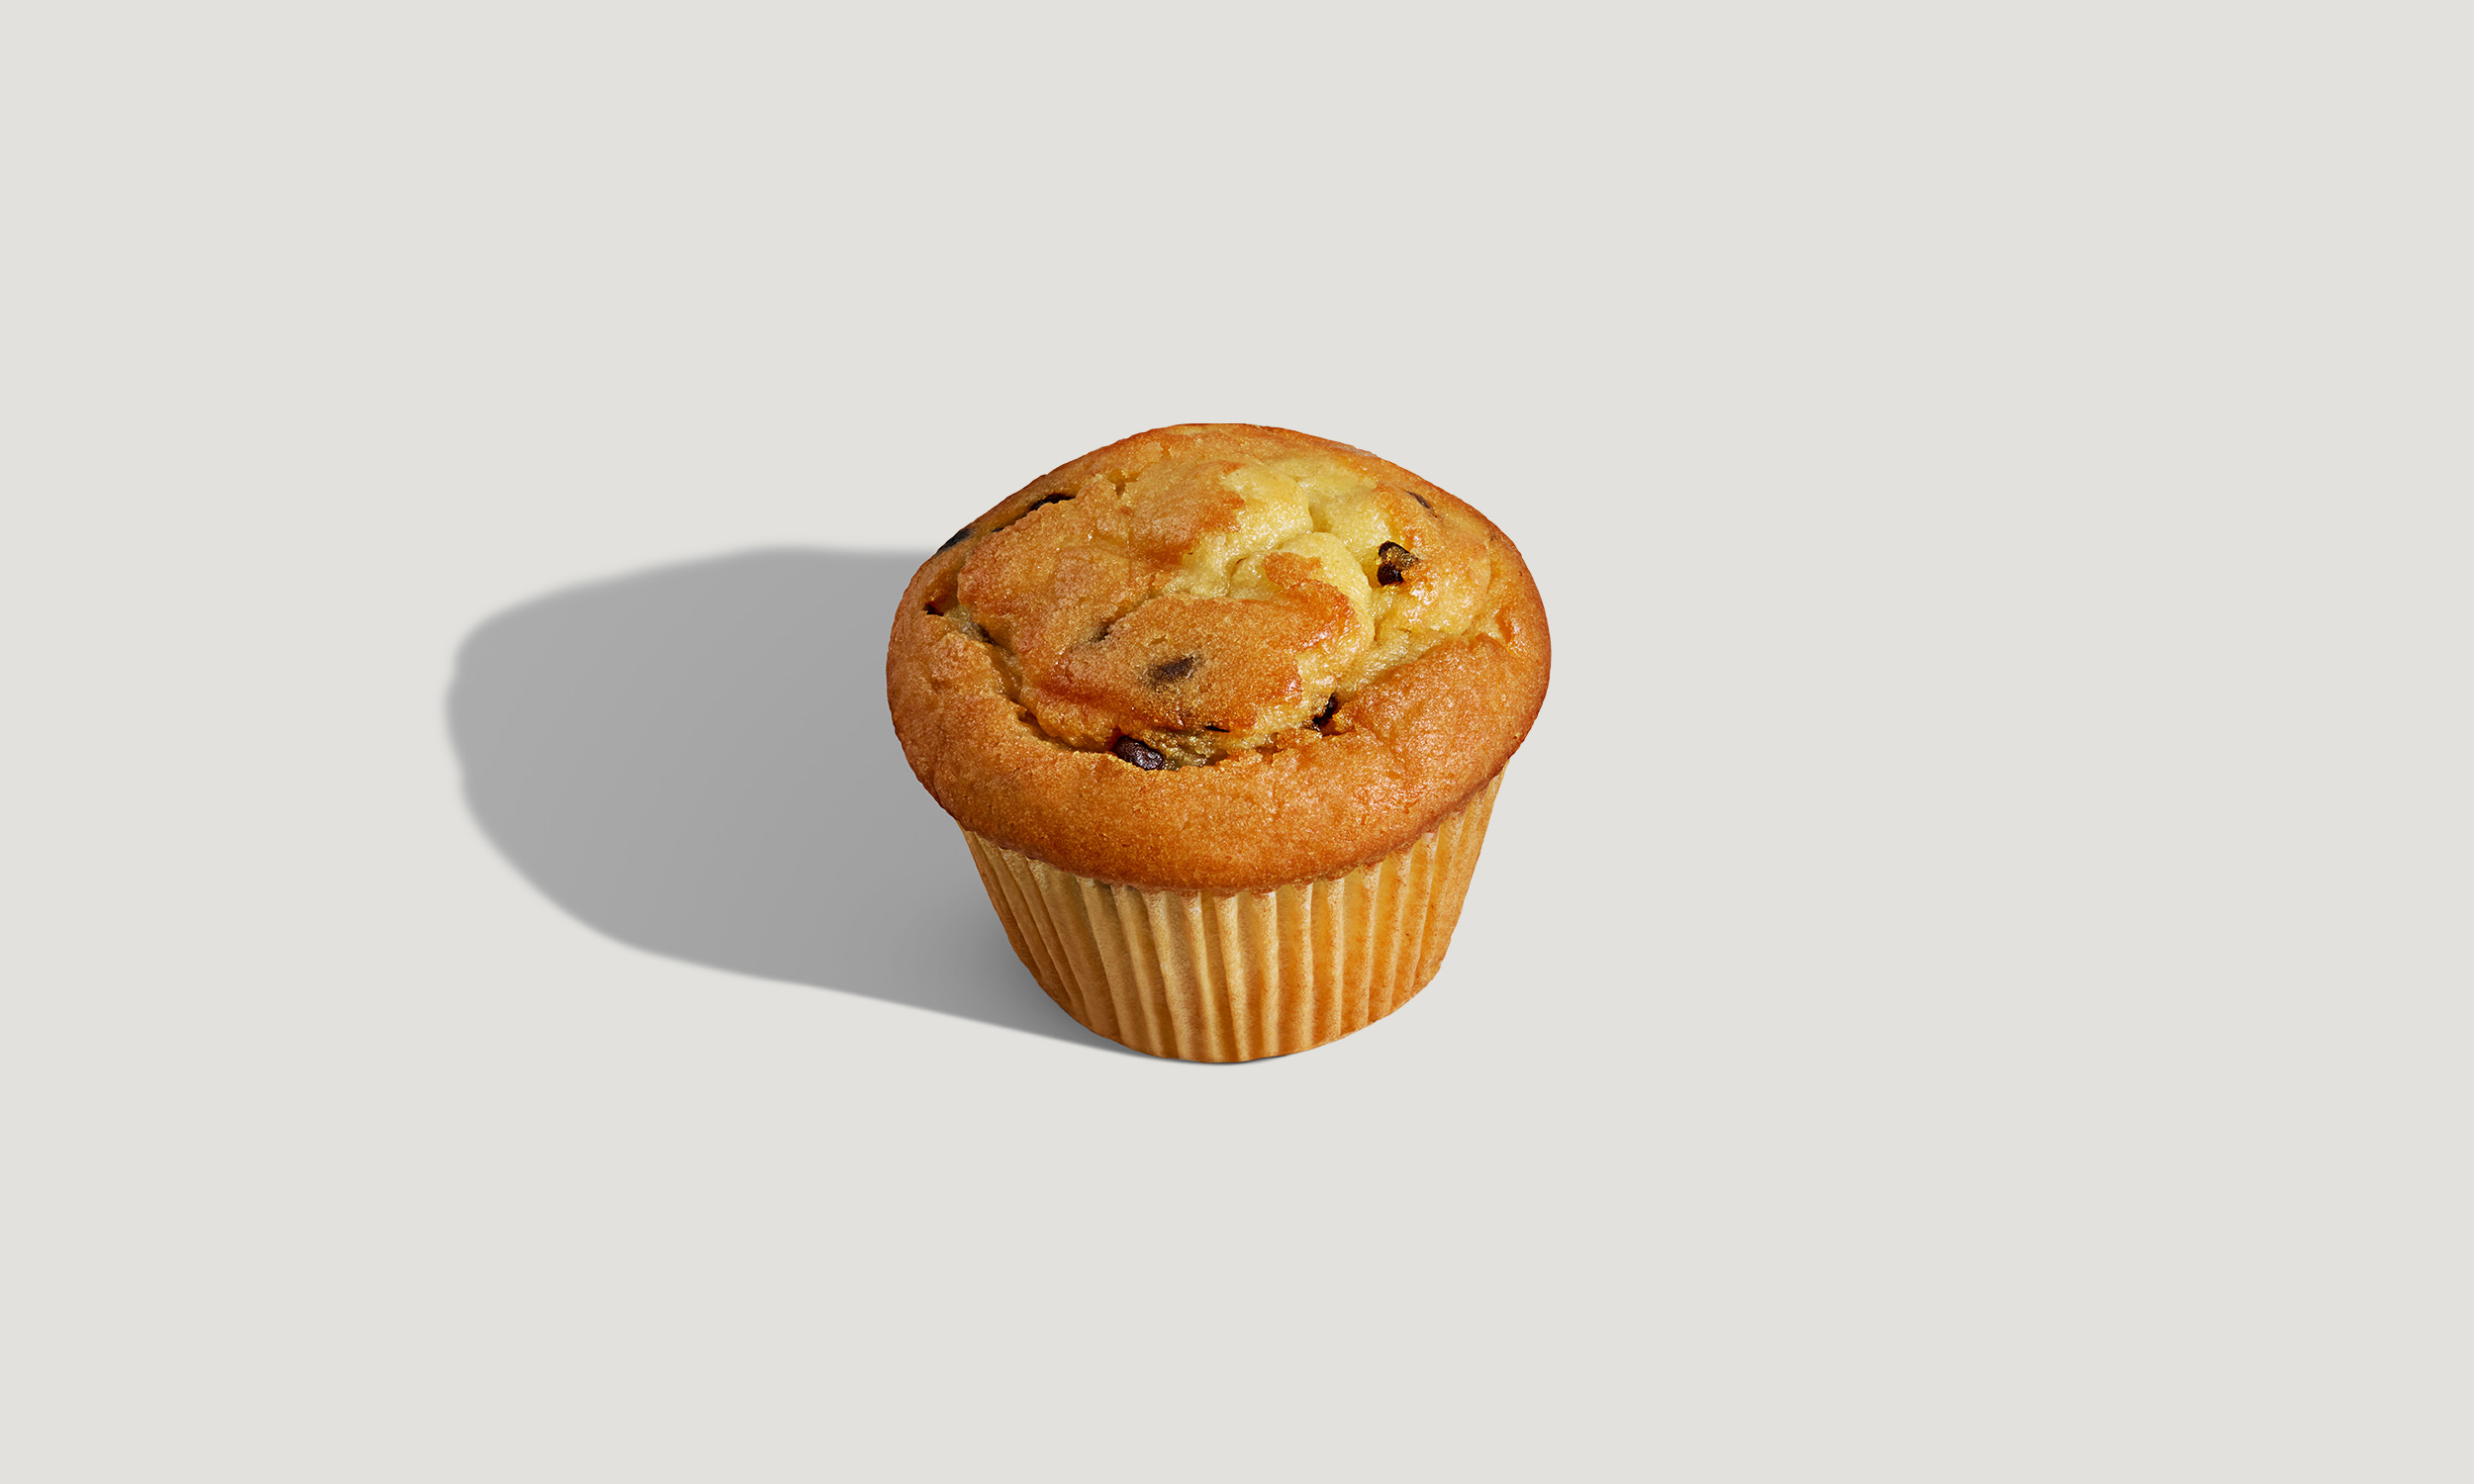 Speedway_IsometricProductPhotography_Muffin.jpg